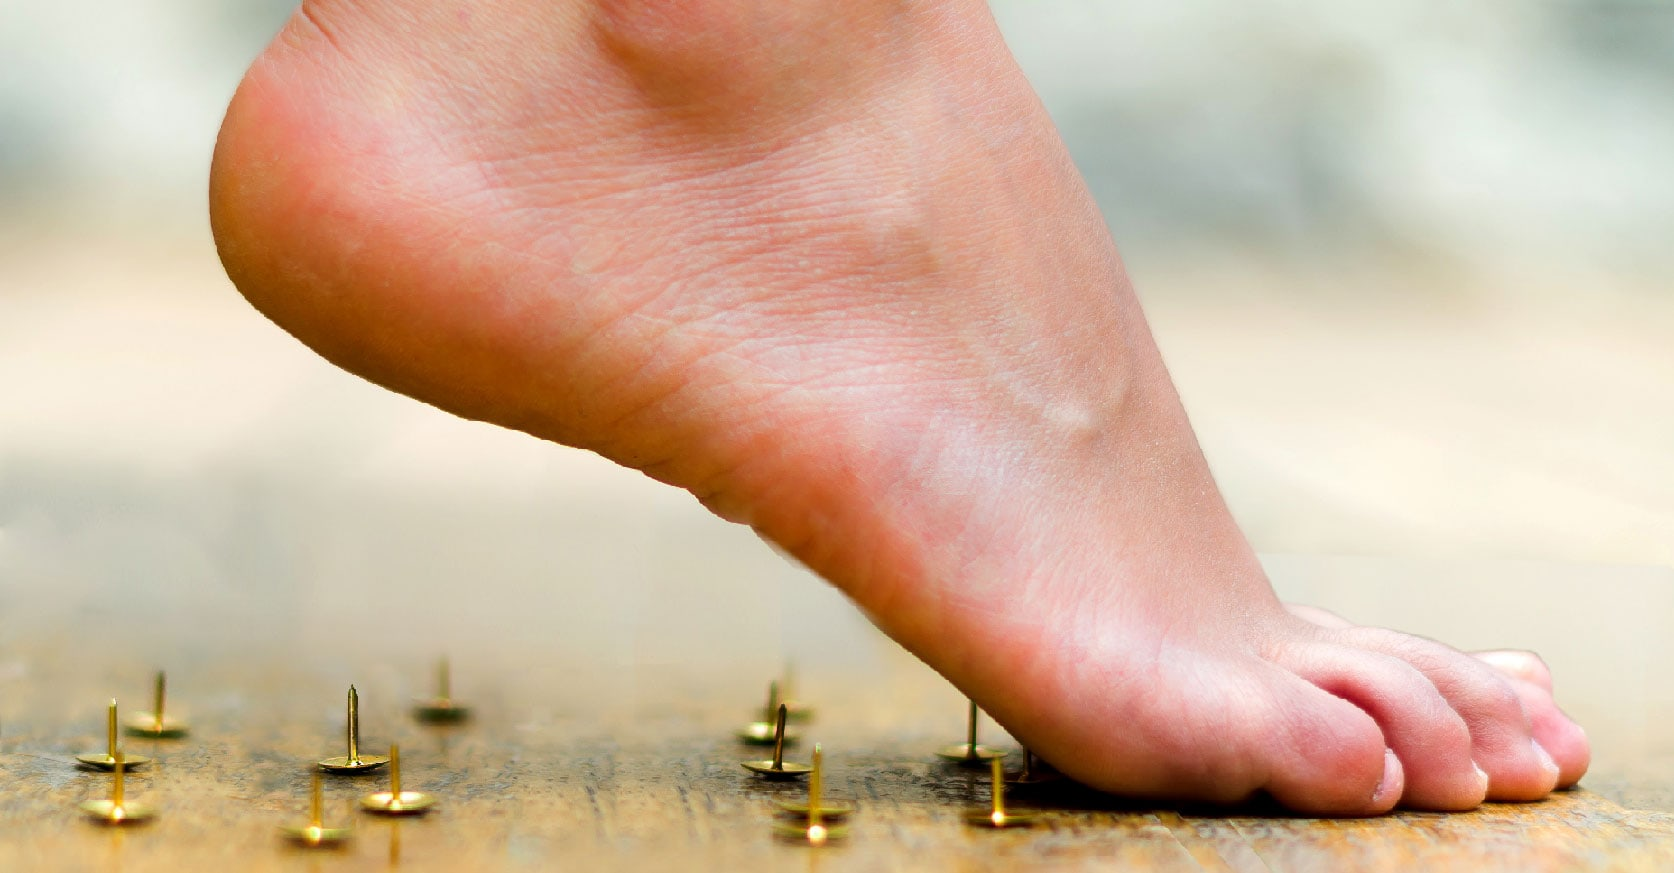 If You're Suffering With Foot and Heel Pain, Don't Ignore It